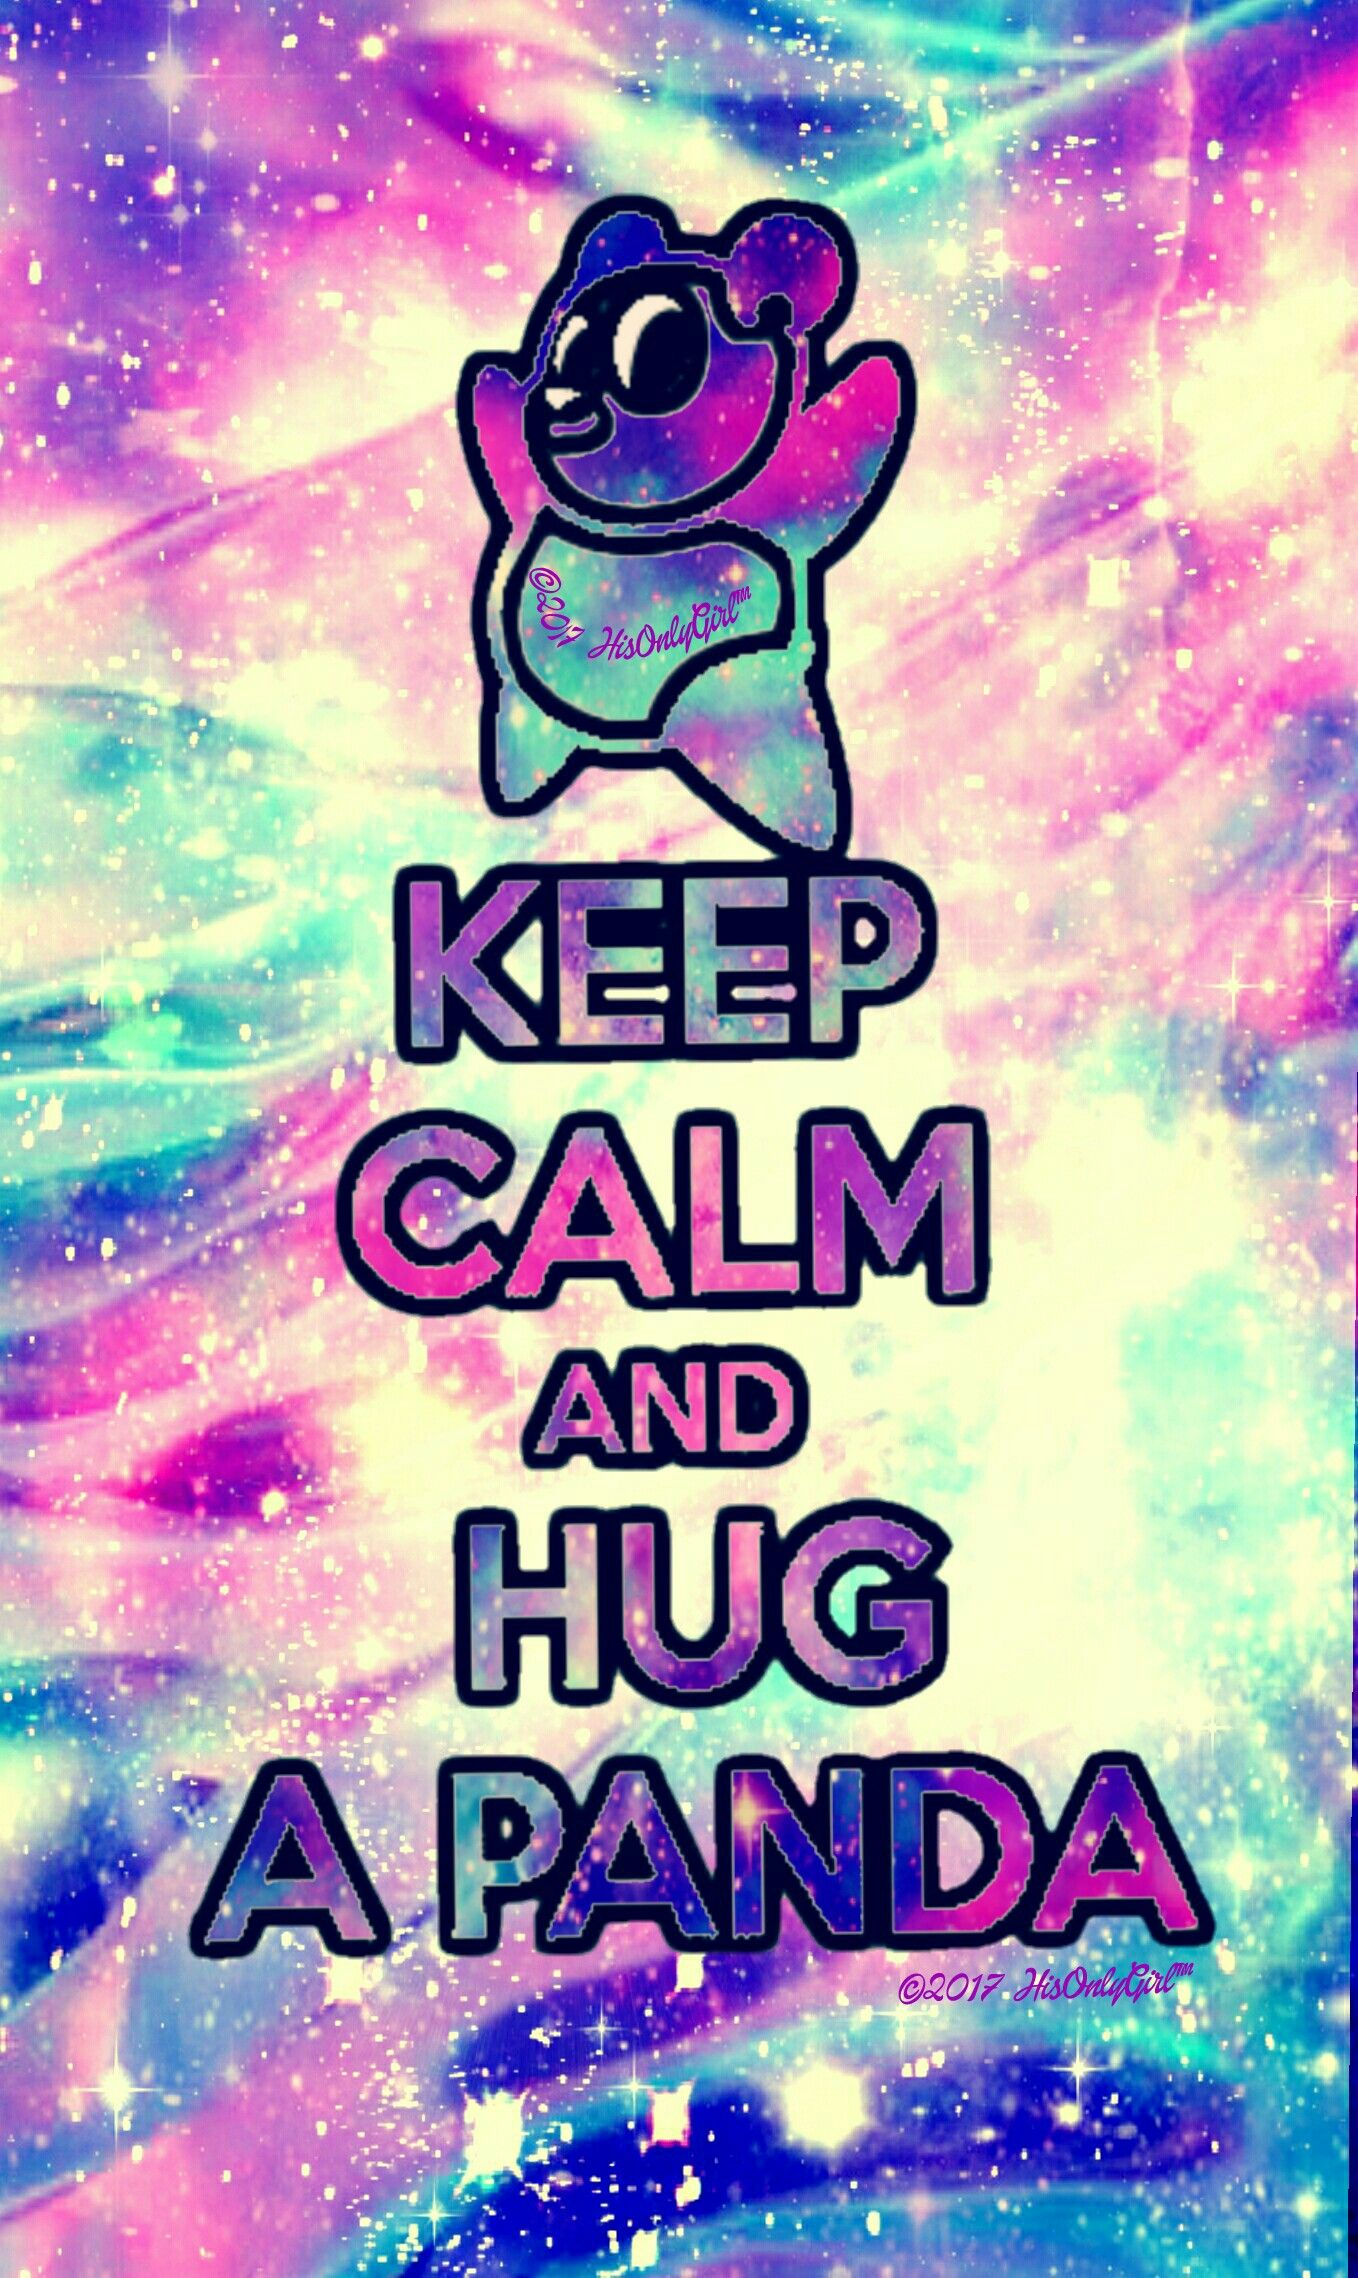 Keep calm Panda galaxy wallpaper I created for the app